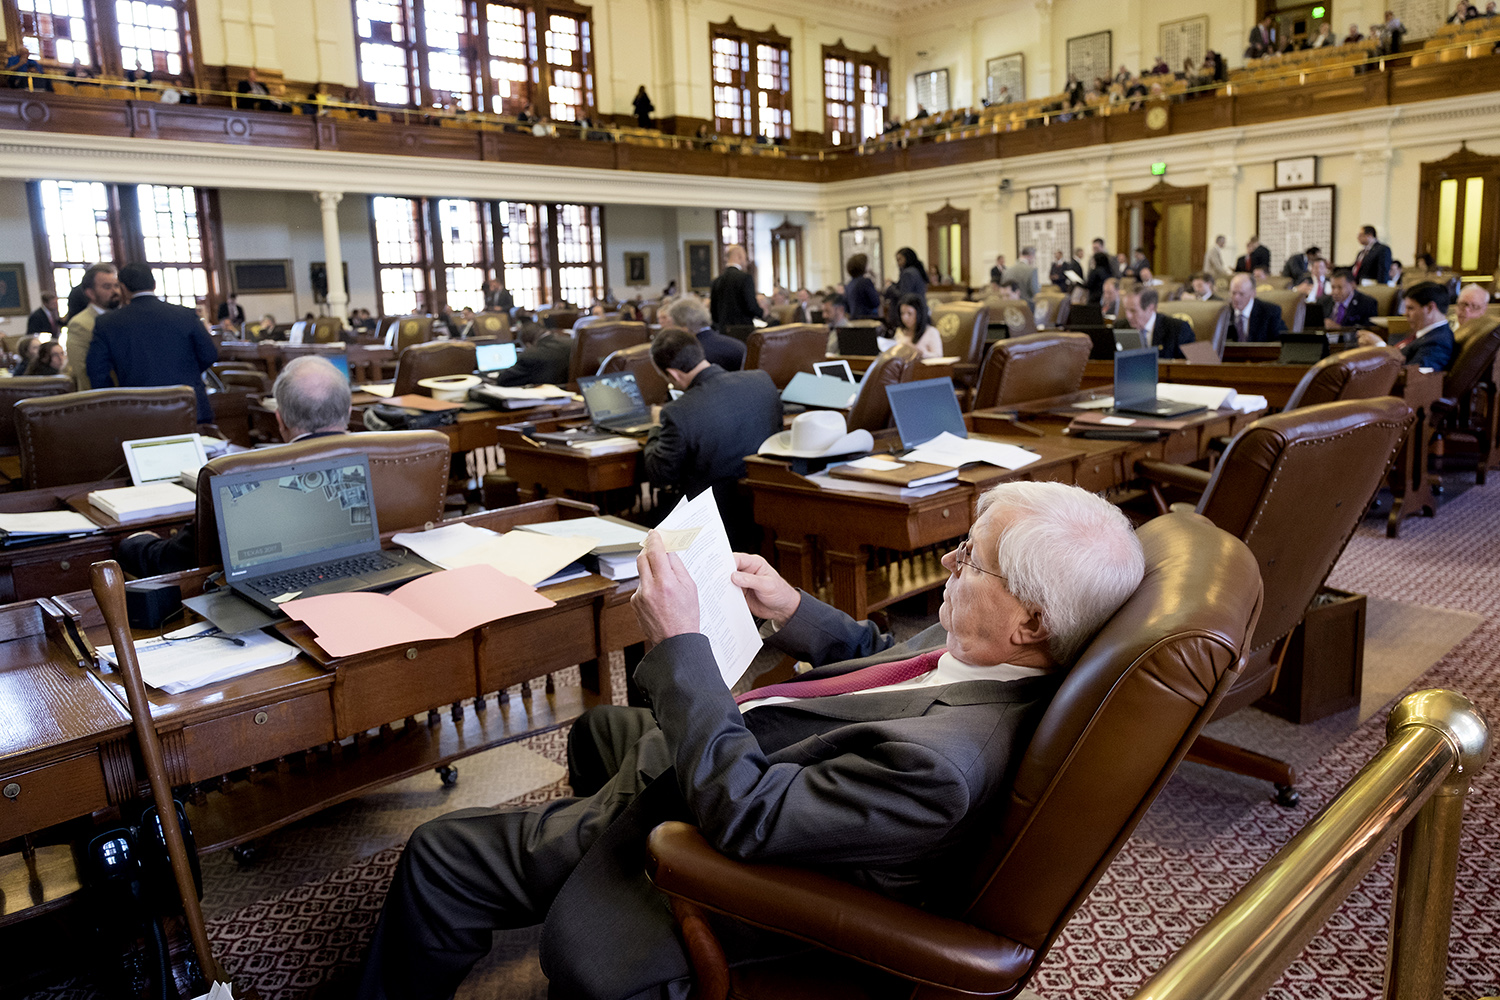 Lawmakers prepared for the anticipated long day in different ways. 20-plus-year House veteran Rep. Charlie Geren, R-Fort Worth, gets comfortable.